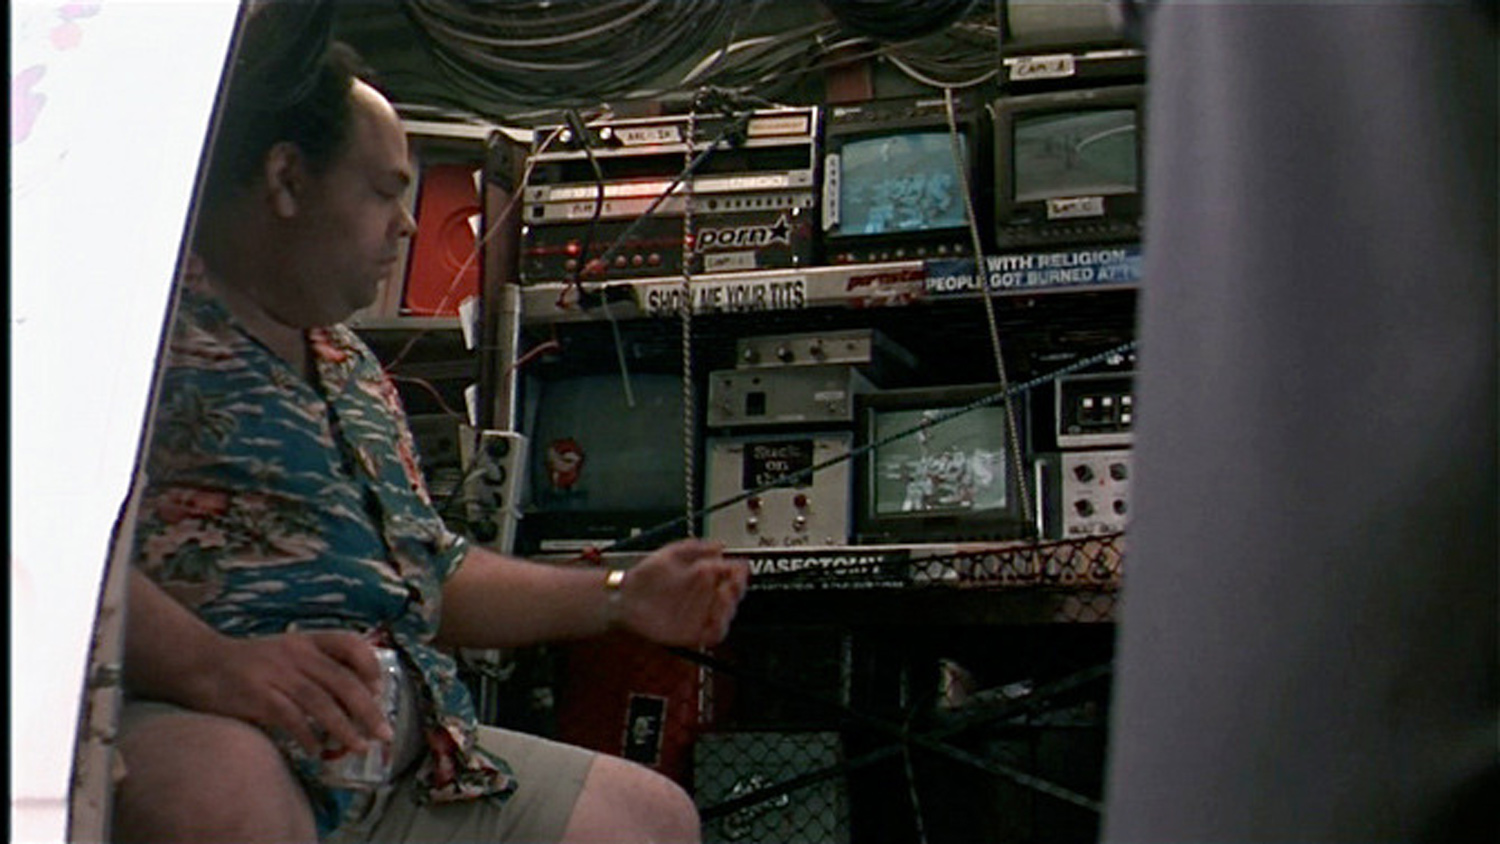 Another view of Ed (Frank Gerrish) in his tricked out surveilance van.